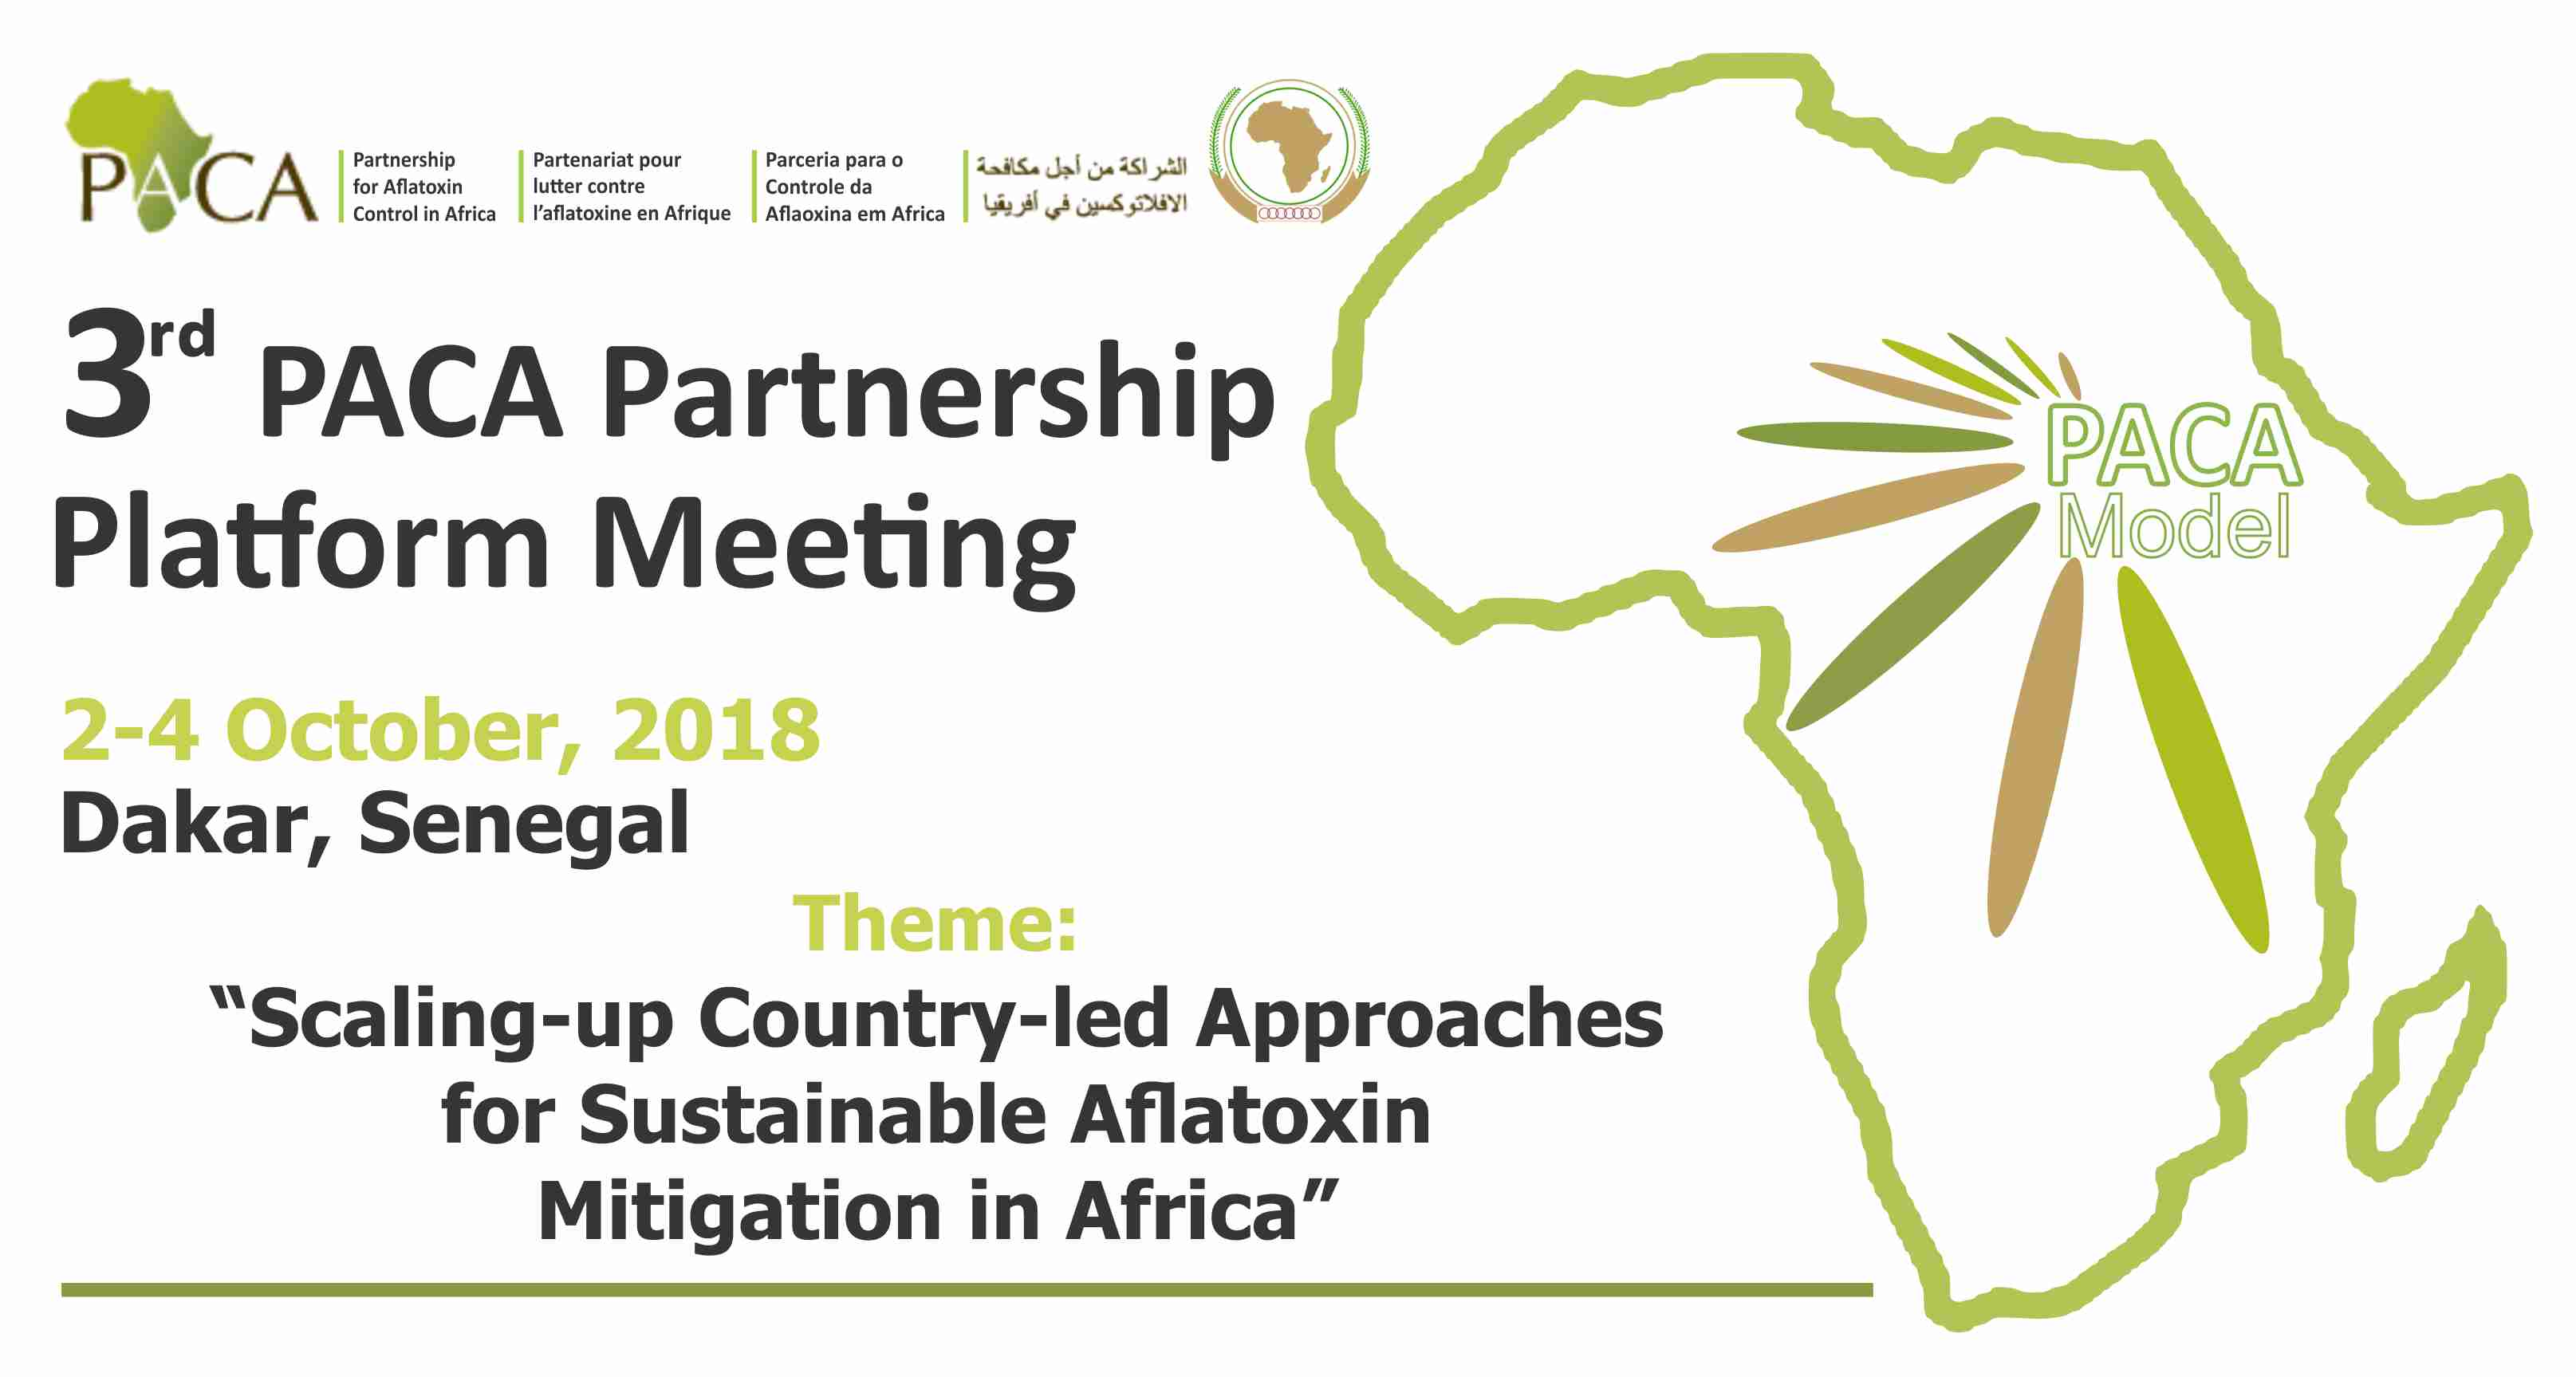 Third PACA partnership platform meeting